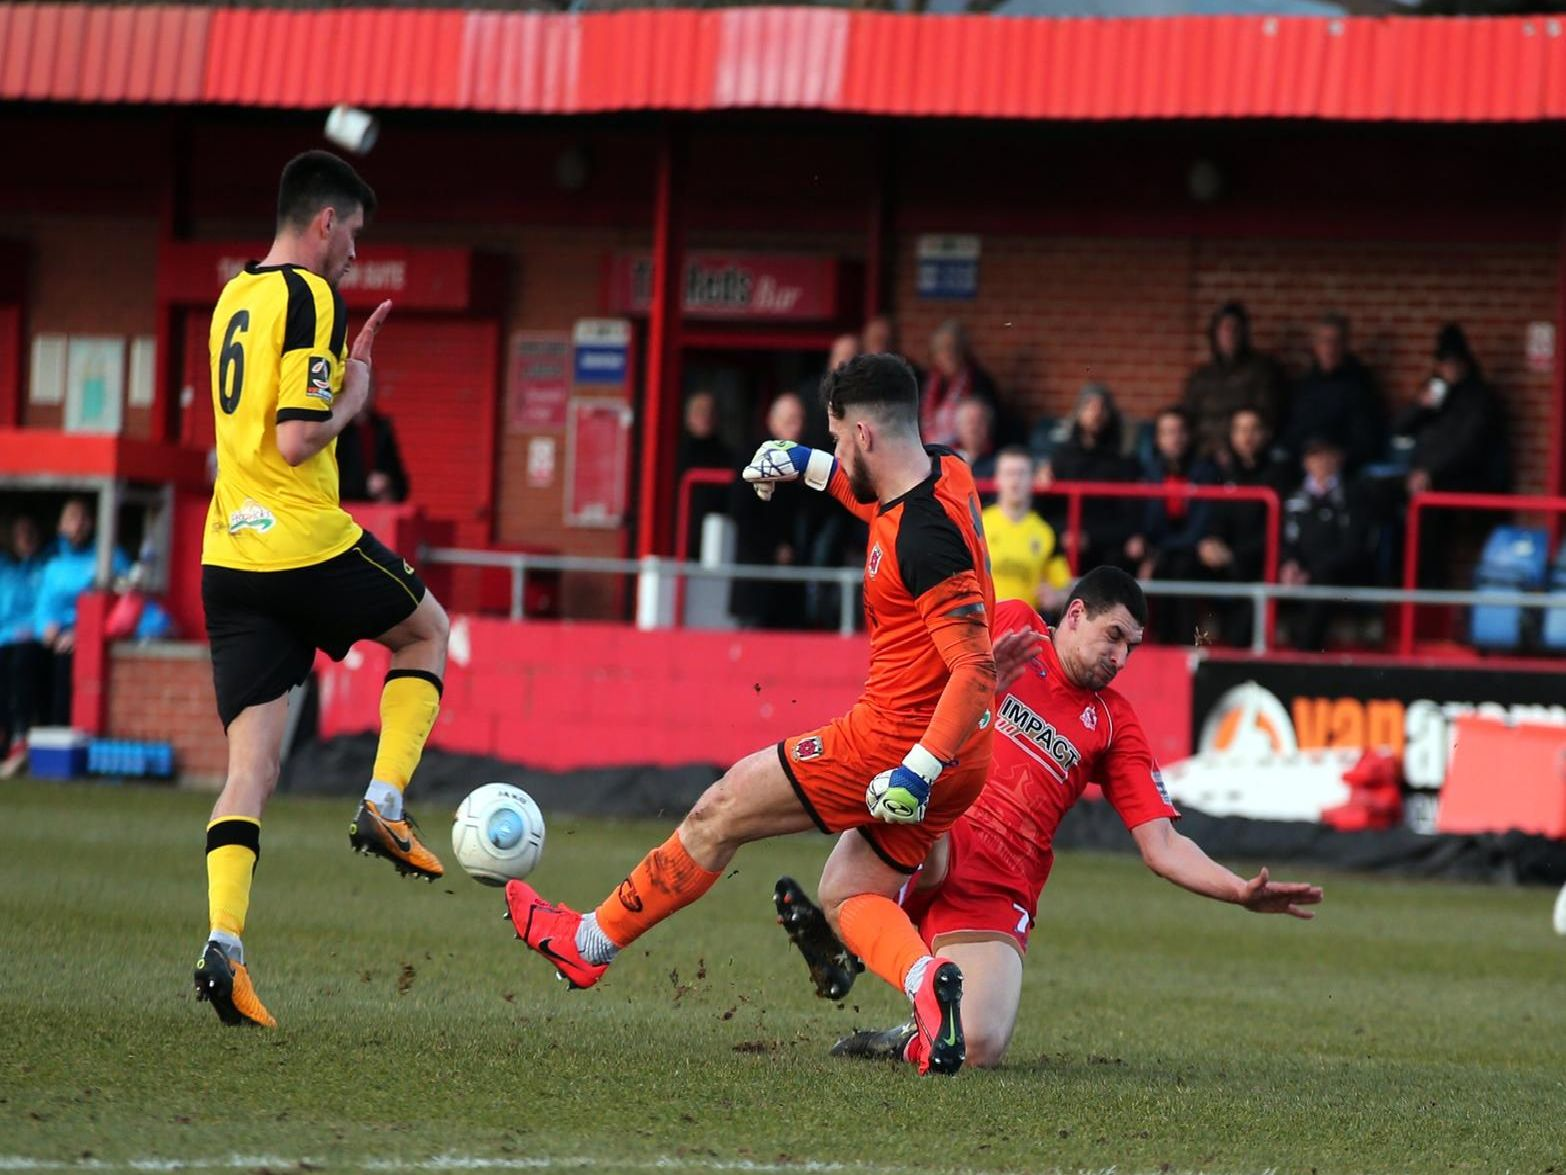 The marurding Danny Clarke is foiled as keeper Matt Urwin wins the race to the ball.